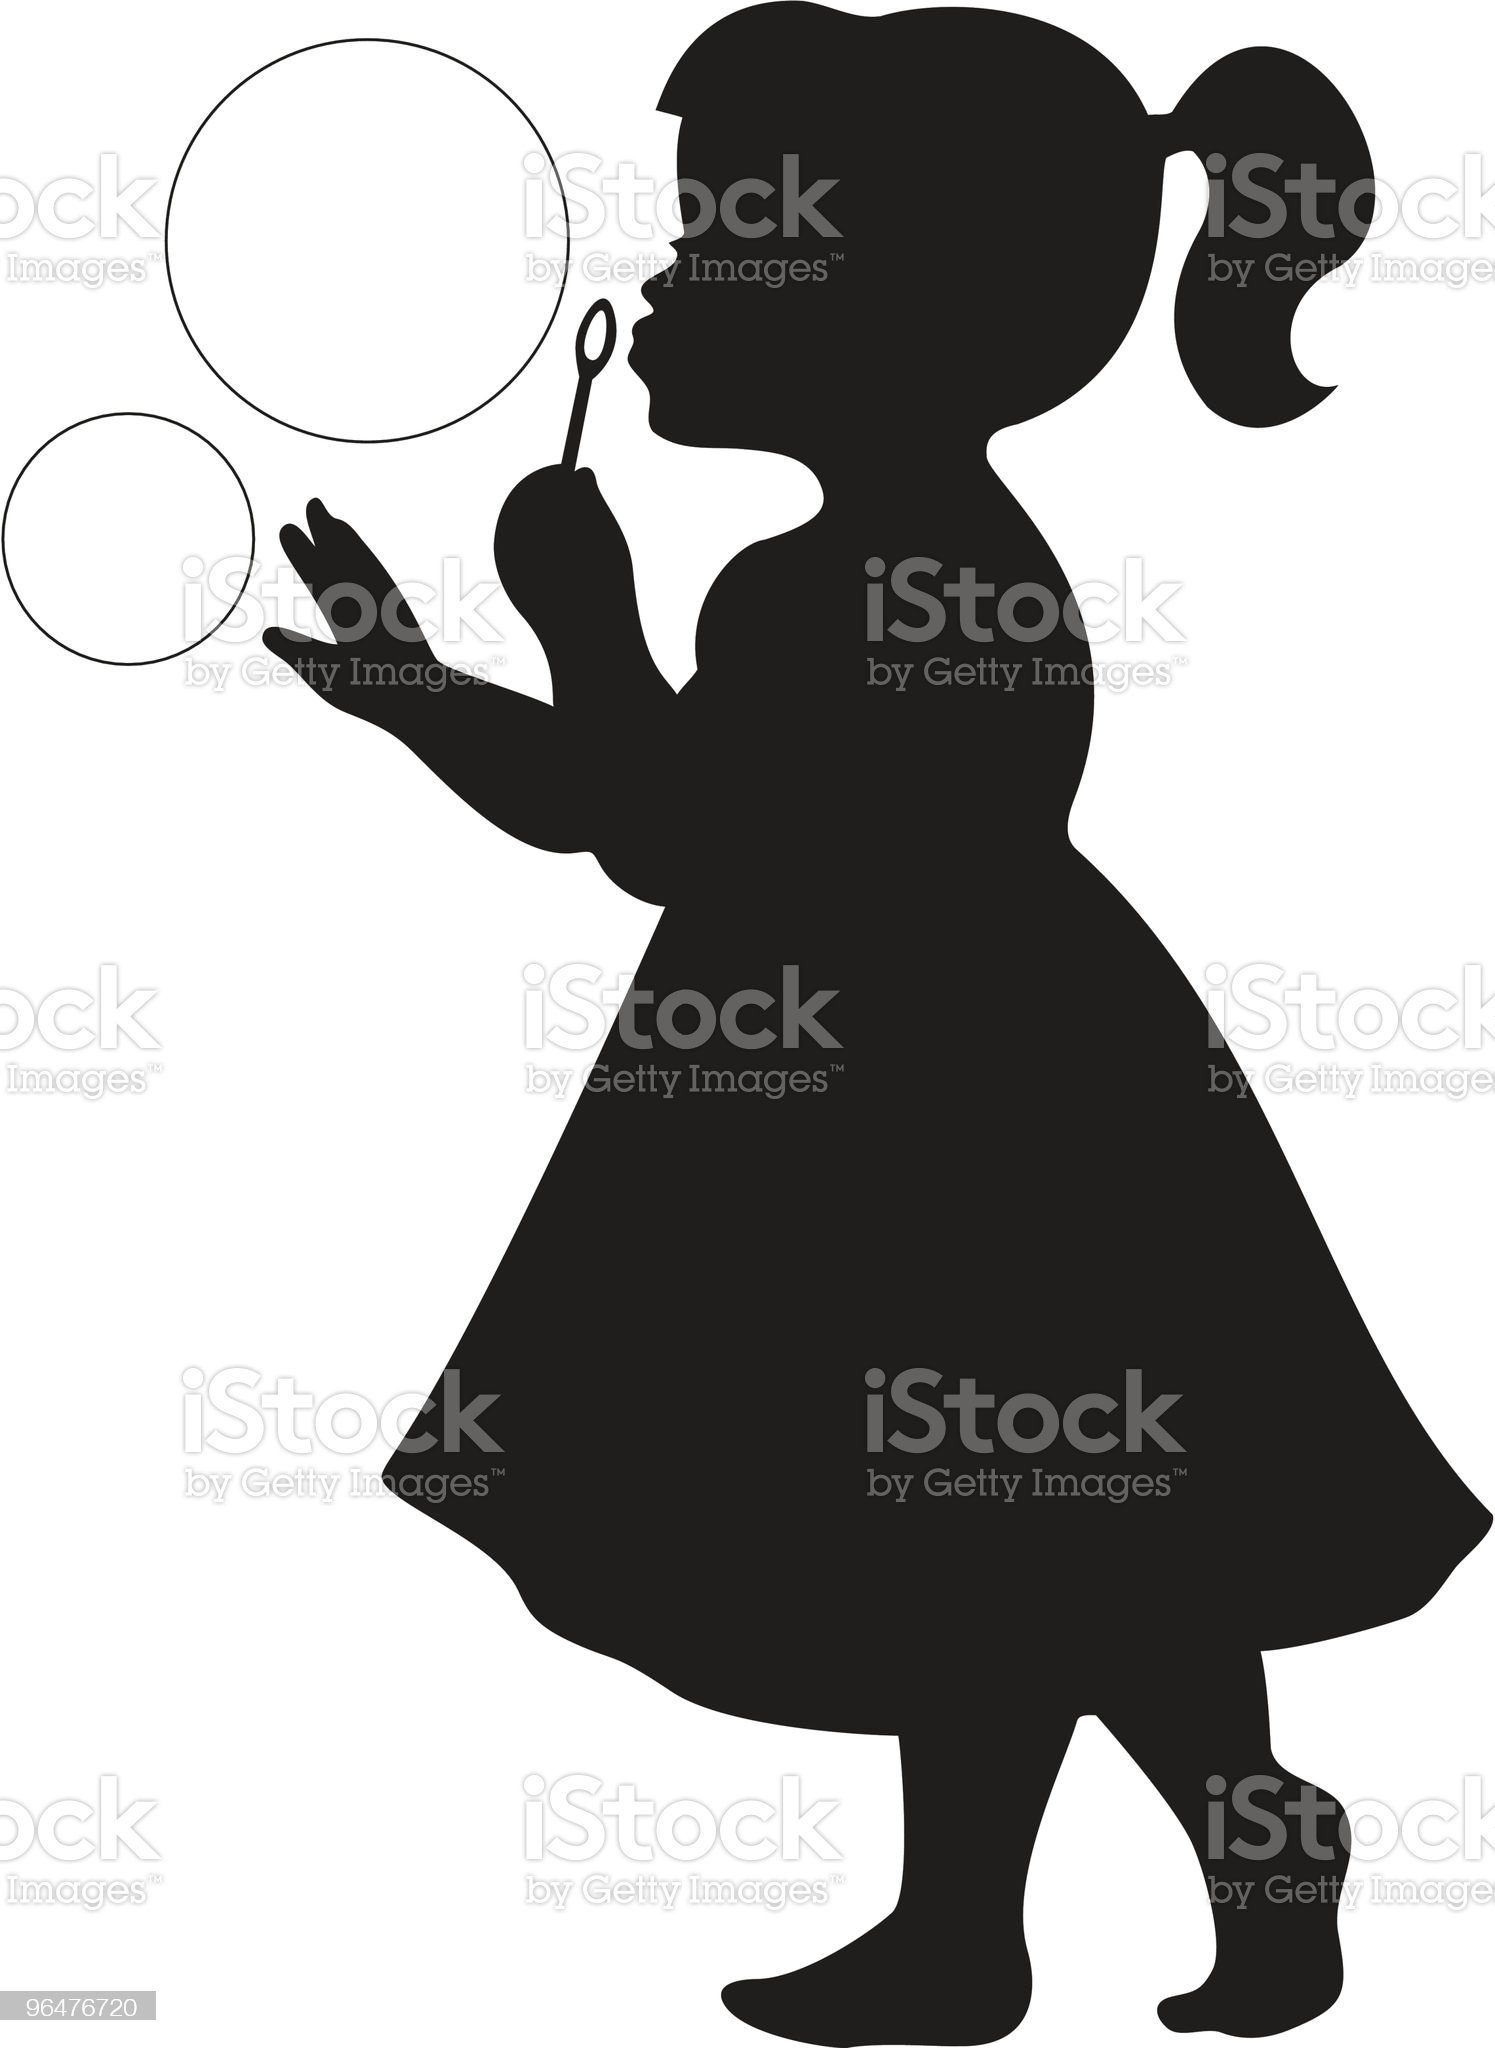 Cute little Girl Blowing Bubbles royalty-free stock vector art